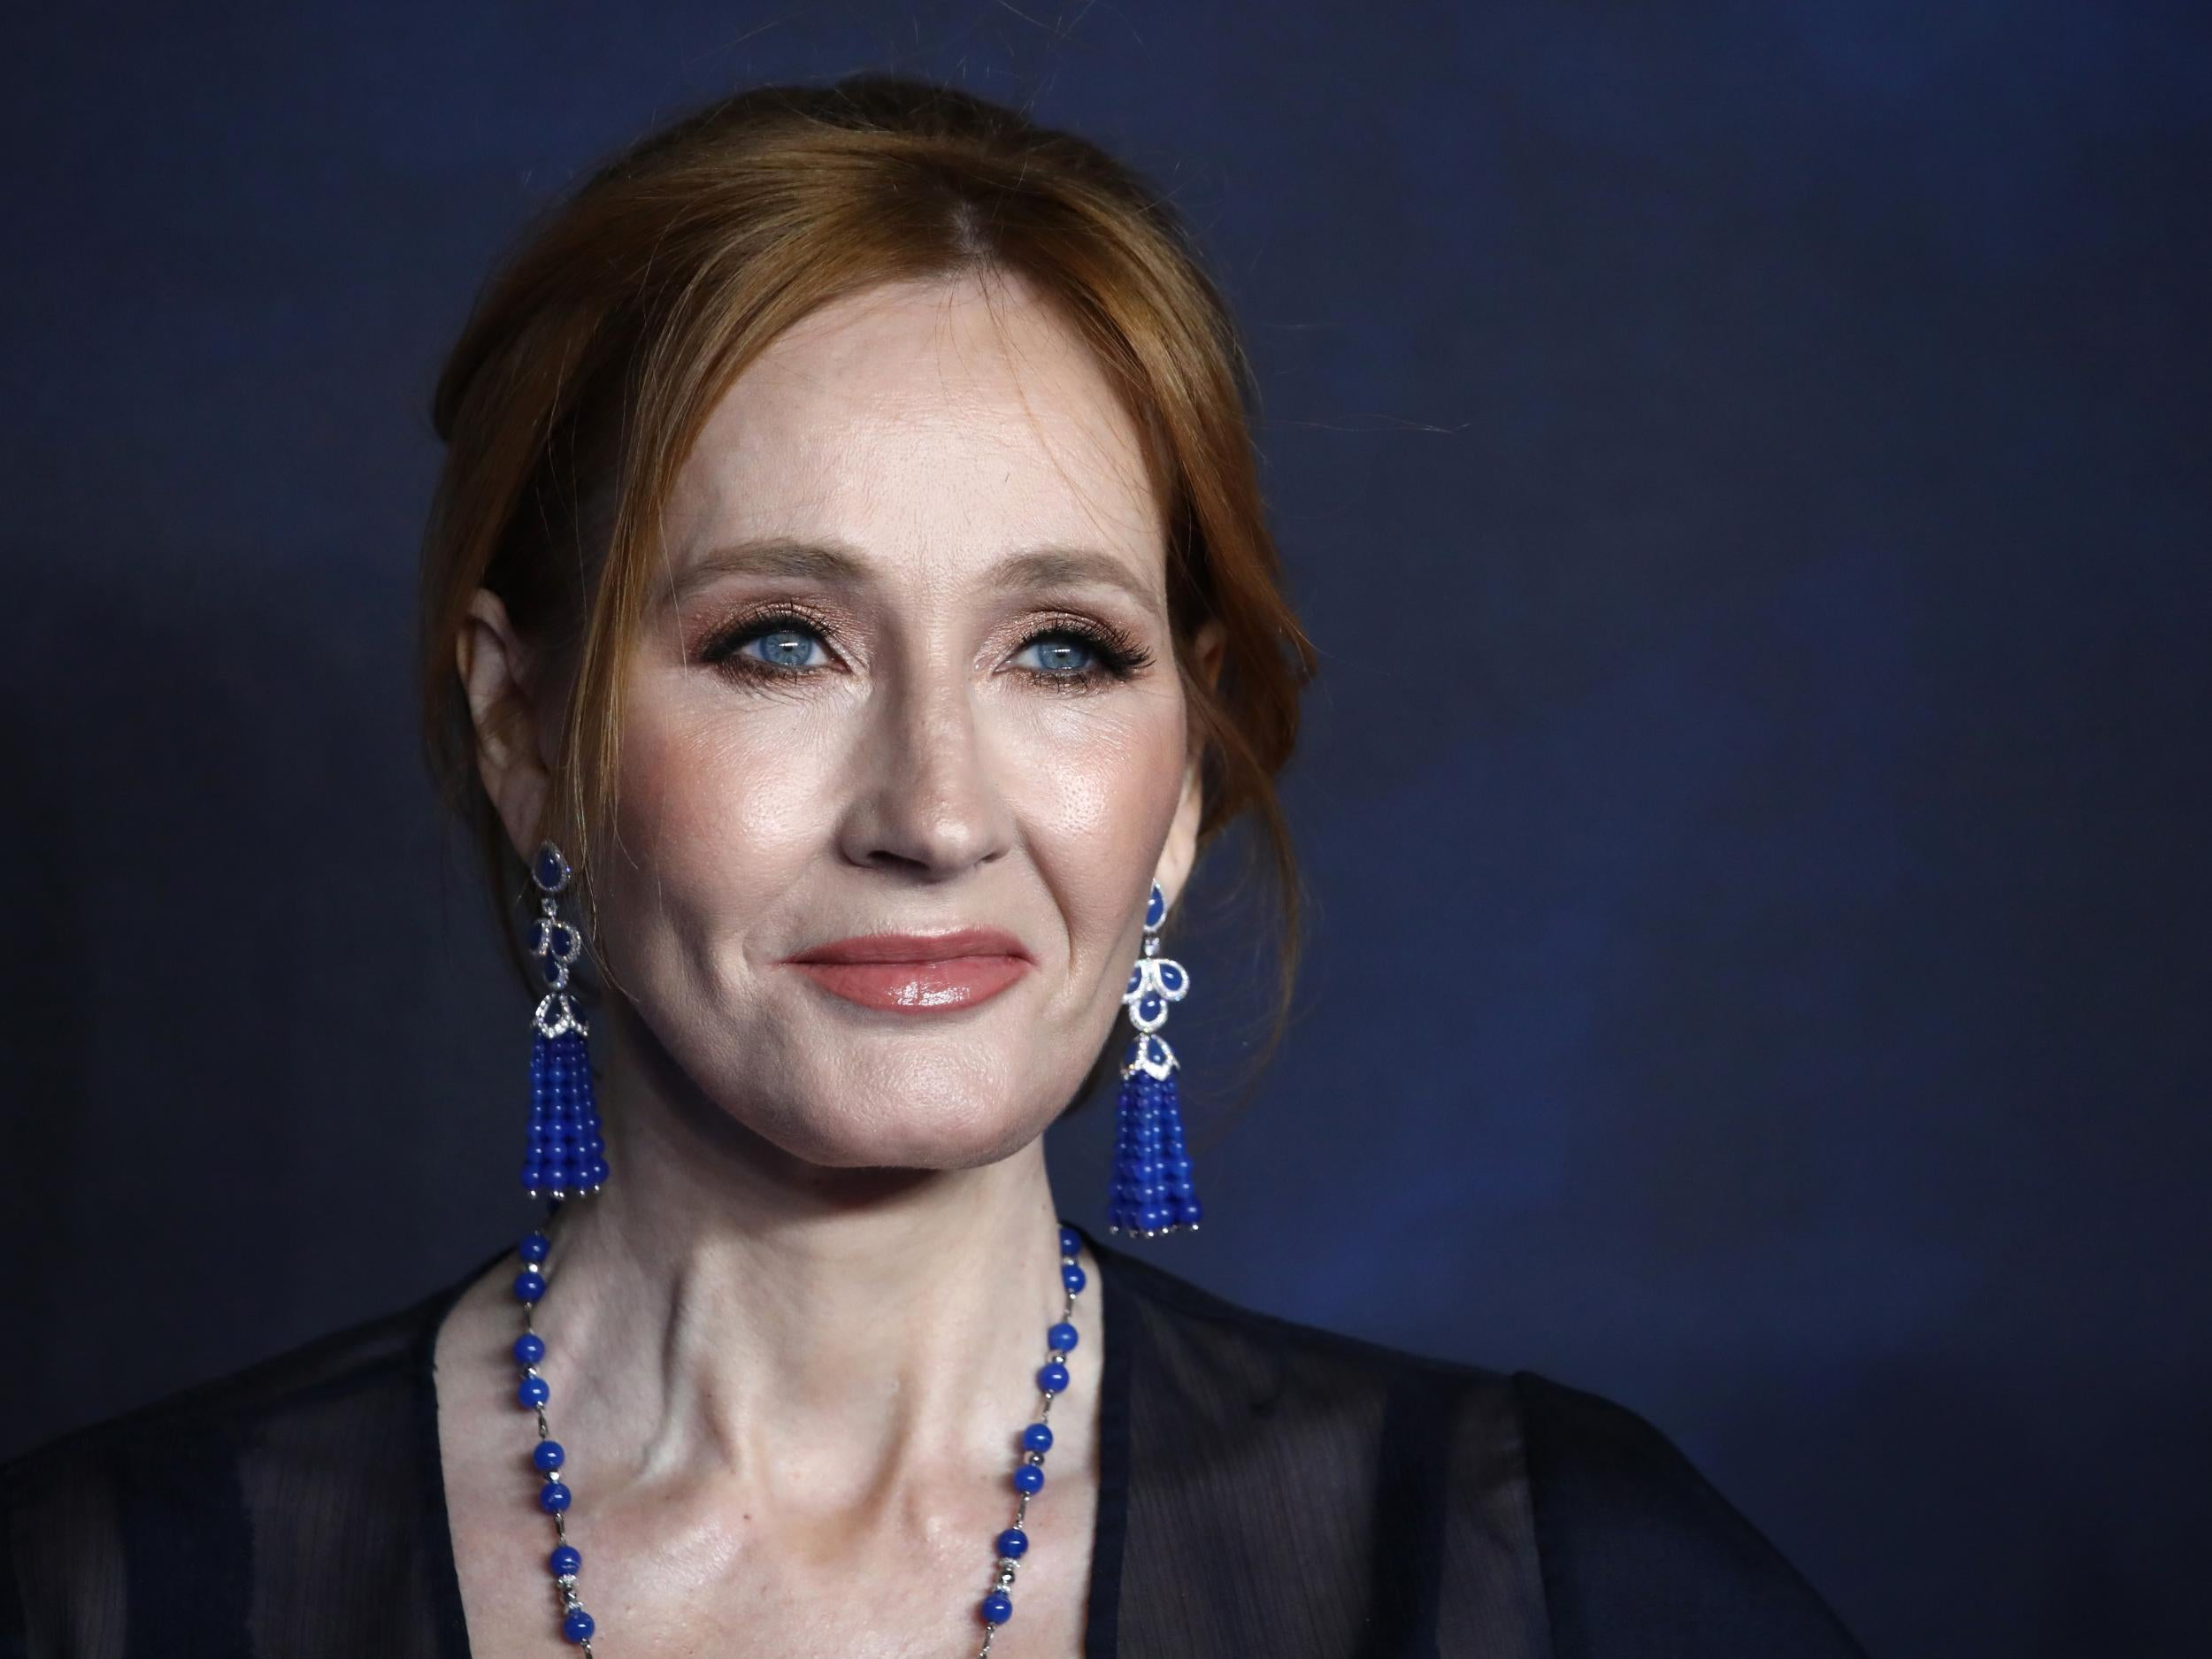 Bookshop makes donation to trans charity every time it sells JK Rowling book